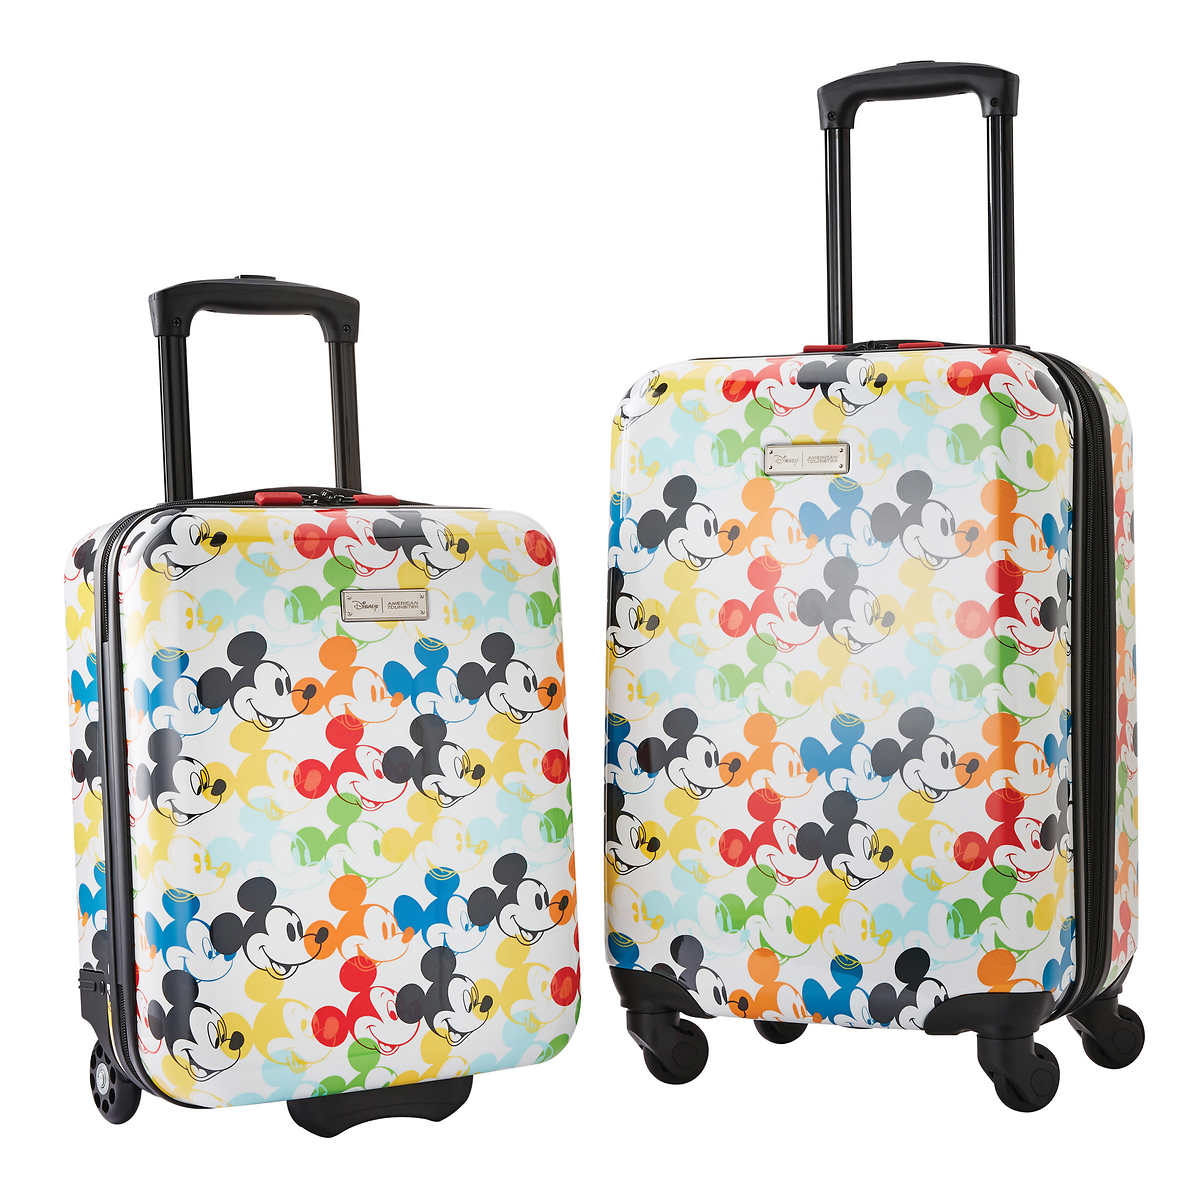 American Tourister Disney 2 Piece Hardside Carry On Luggage Set Mickey Mouse